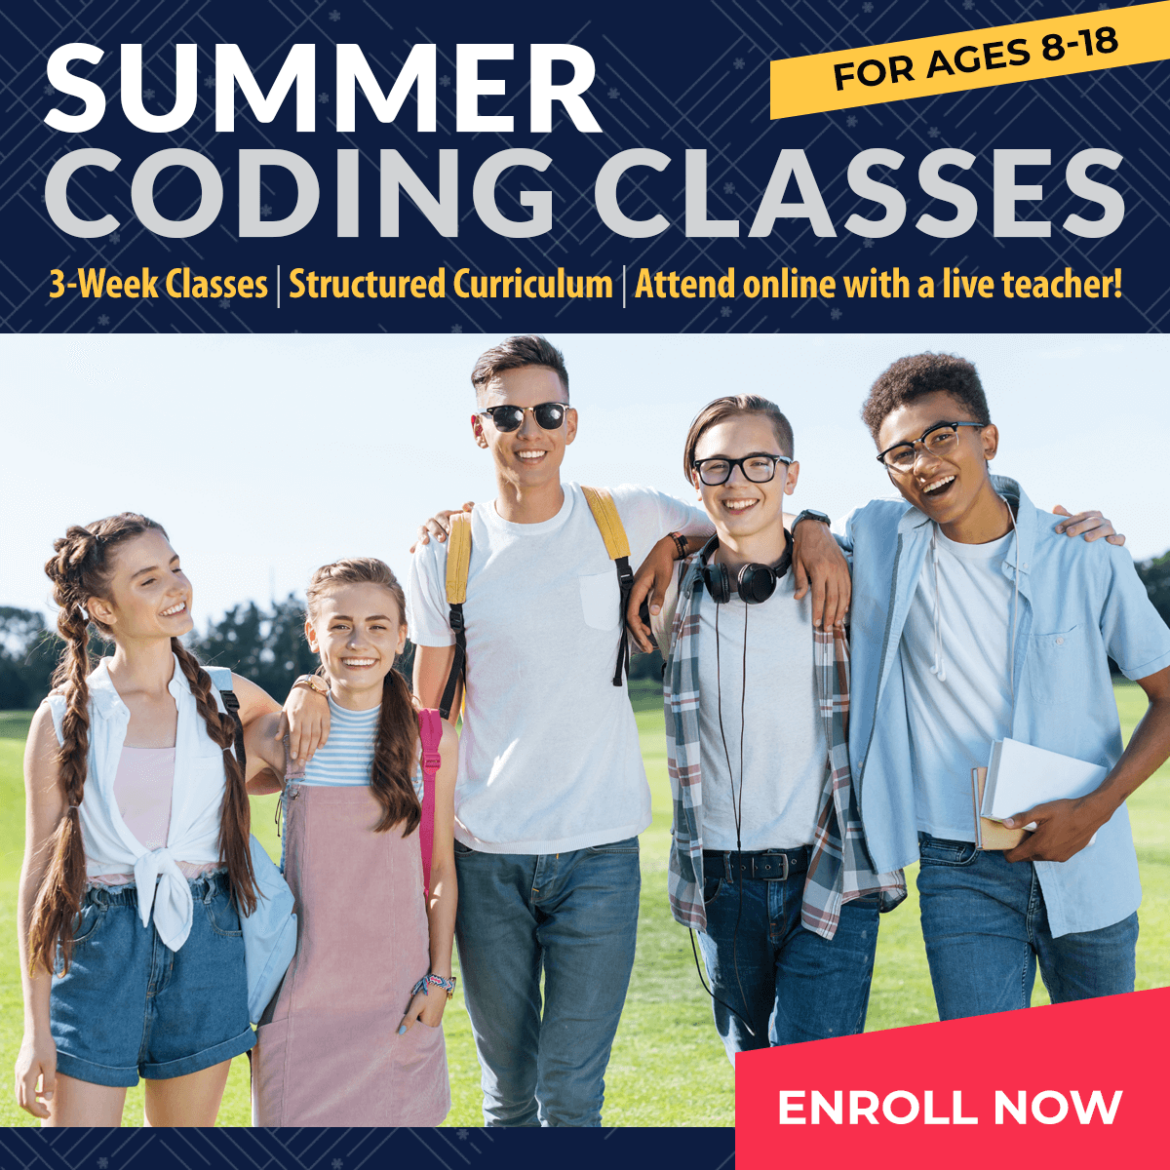 Summer Free & Fee Camp Coding Classes Are Enrolling Now